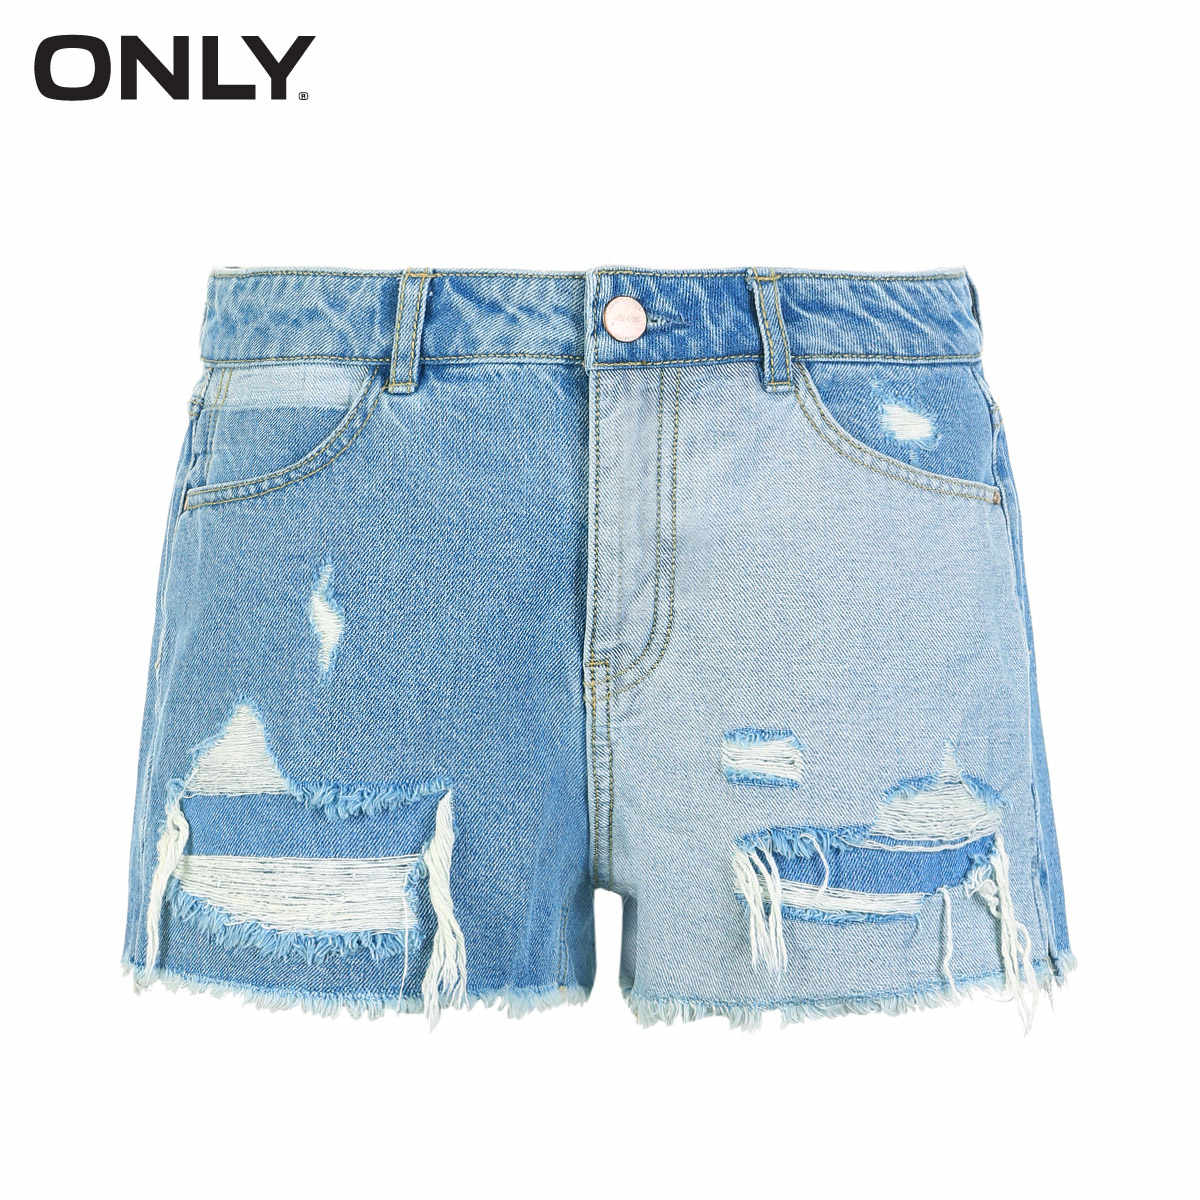 ONLY Summer Women's Worn Raw-edge Denim Shorts |118243547